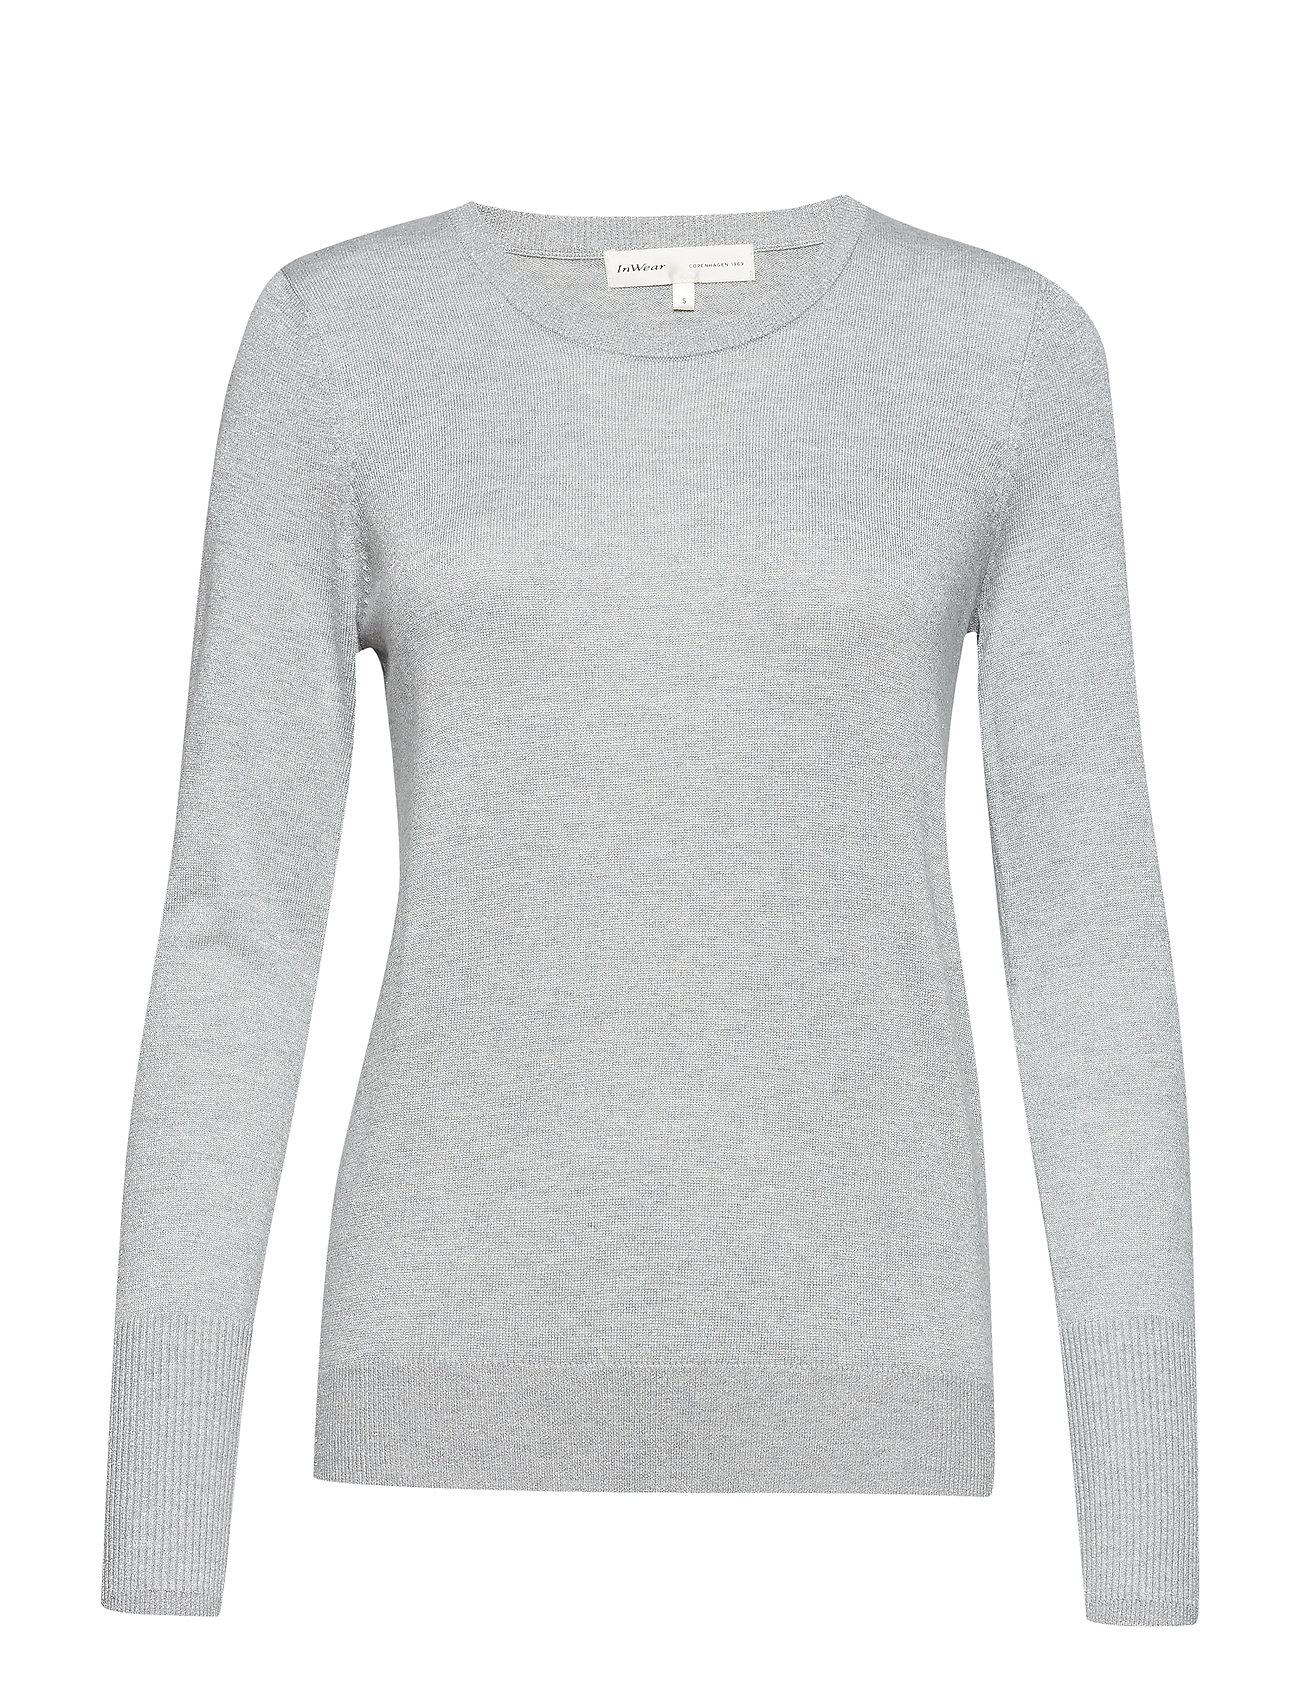 InWear Zabine Pullover - NEW LIGHT GREY MELANGE